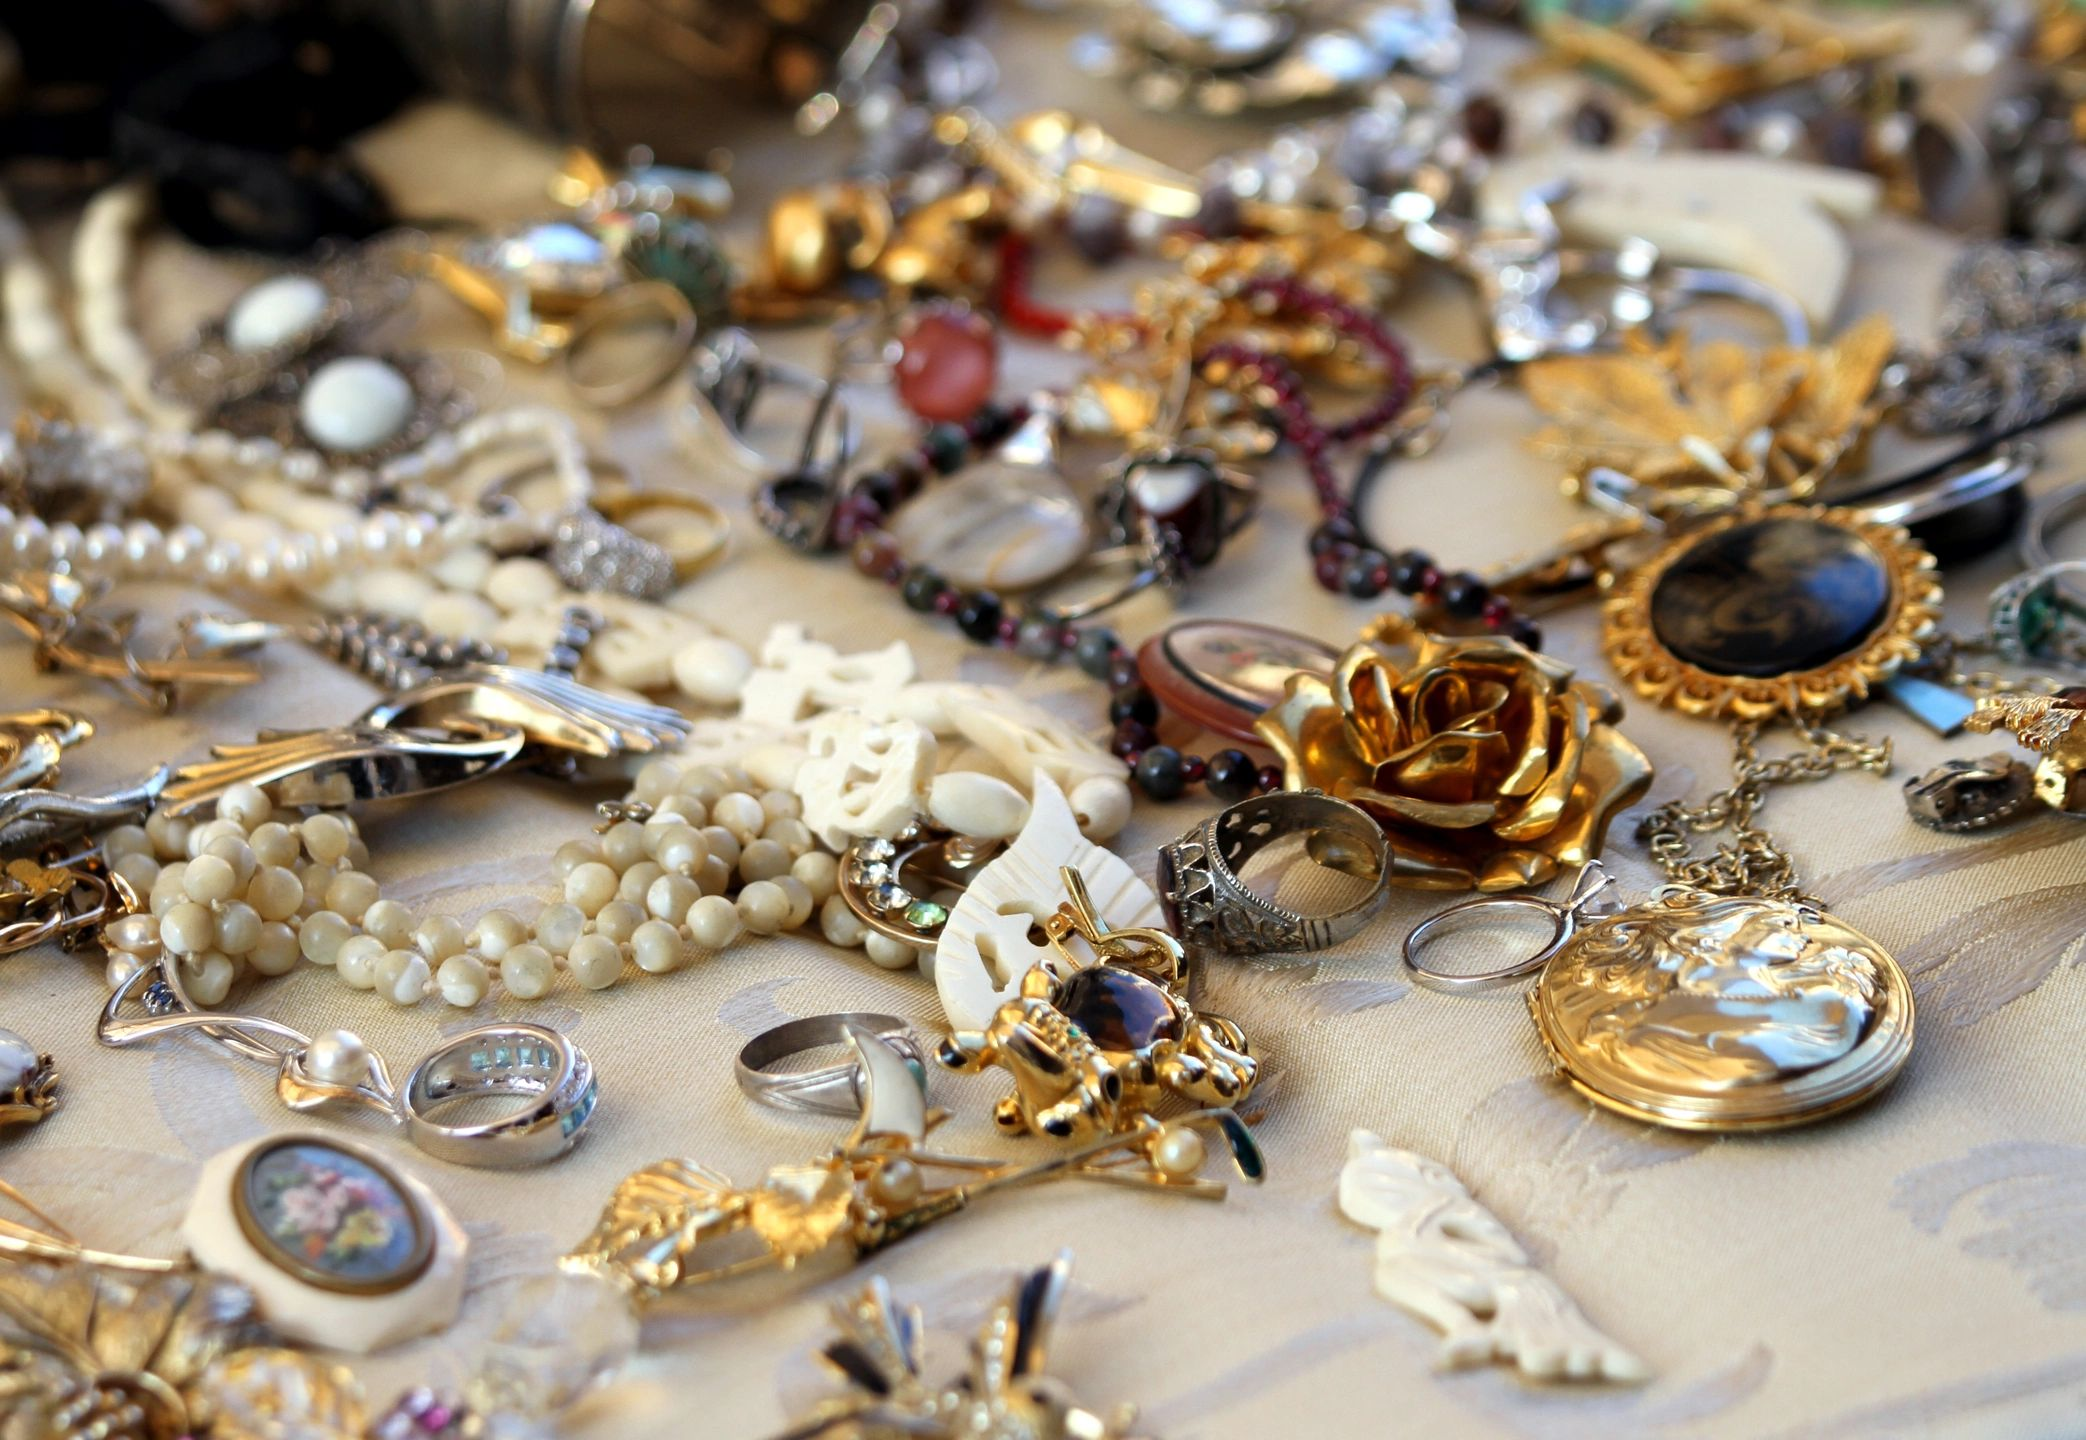 Exeter finds new 'Affordable Treasures'